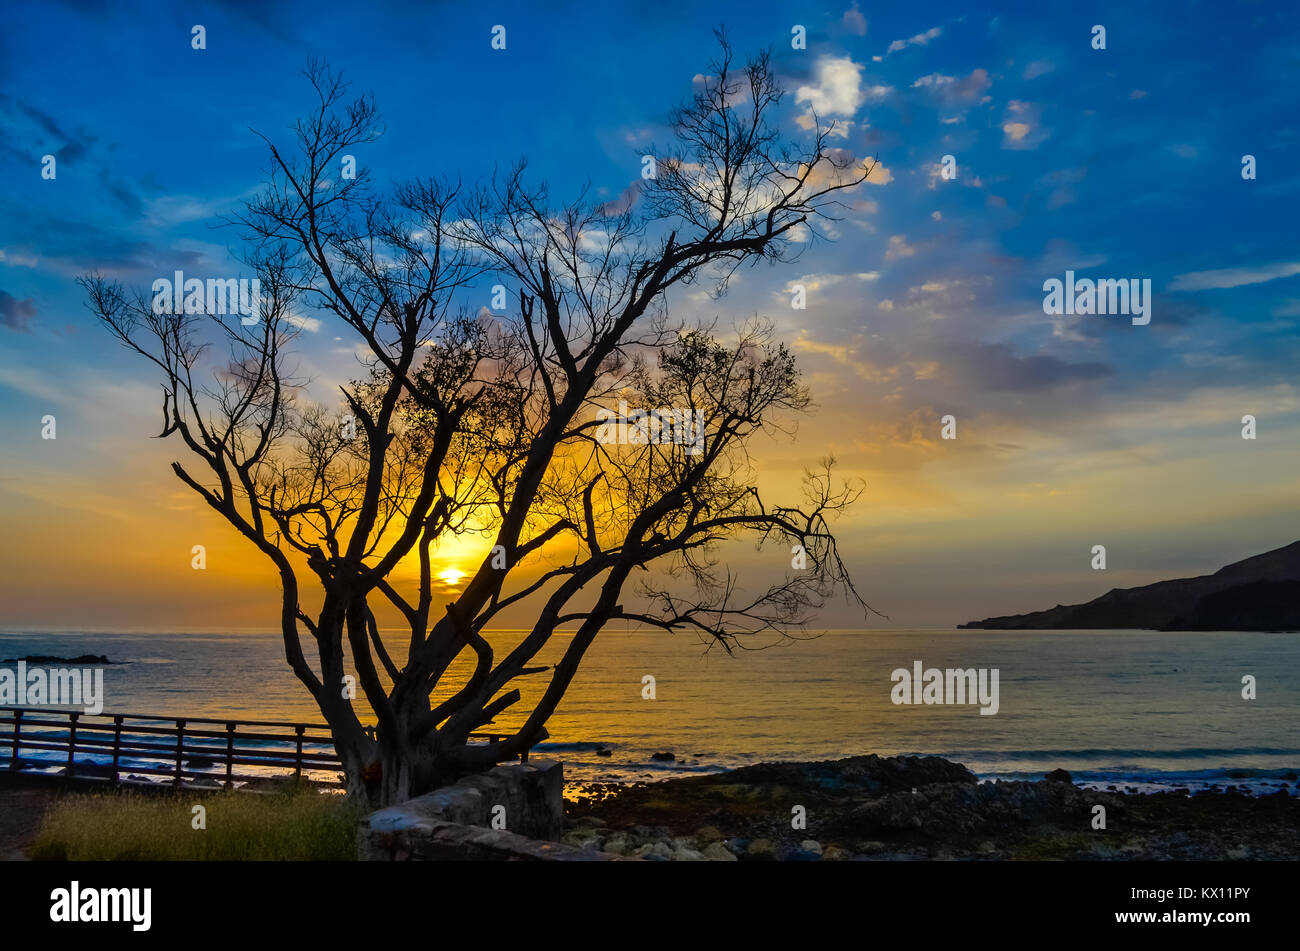 Blue and orange tones of sunrise through the obstacles of a tree. - Stock Image